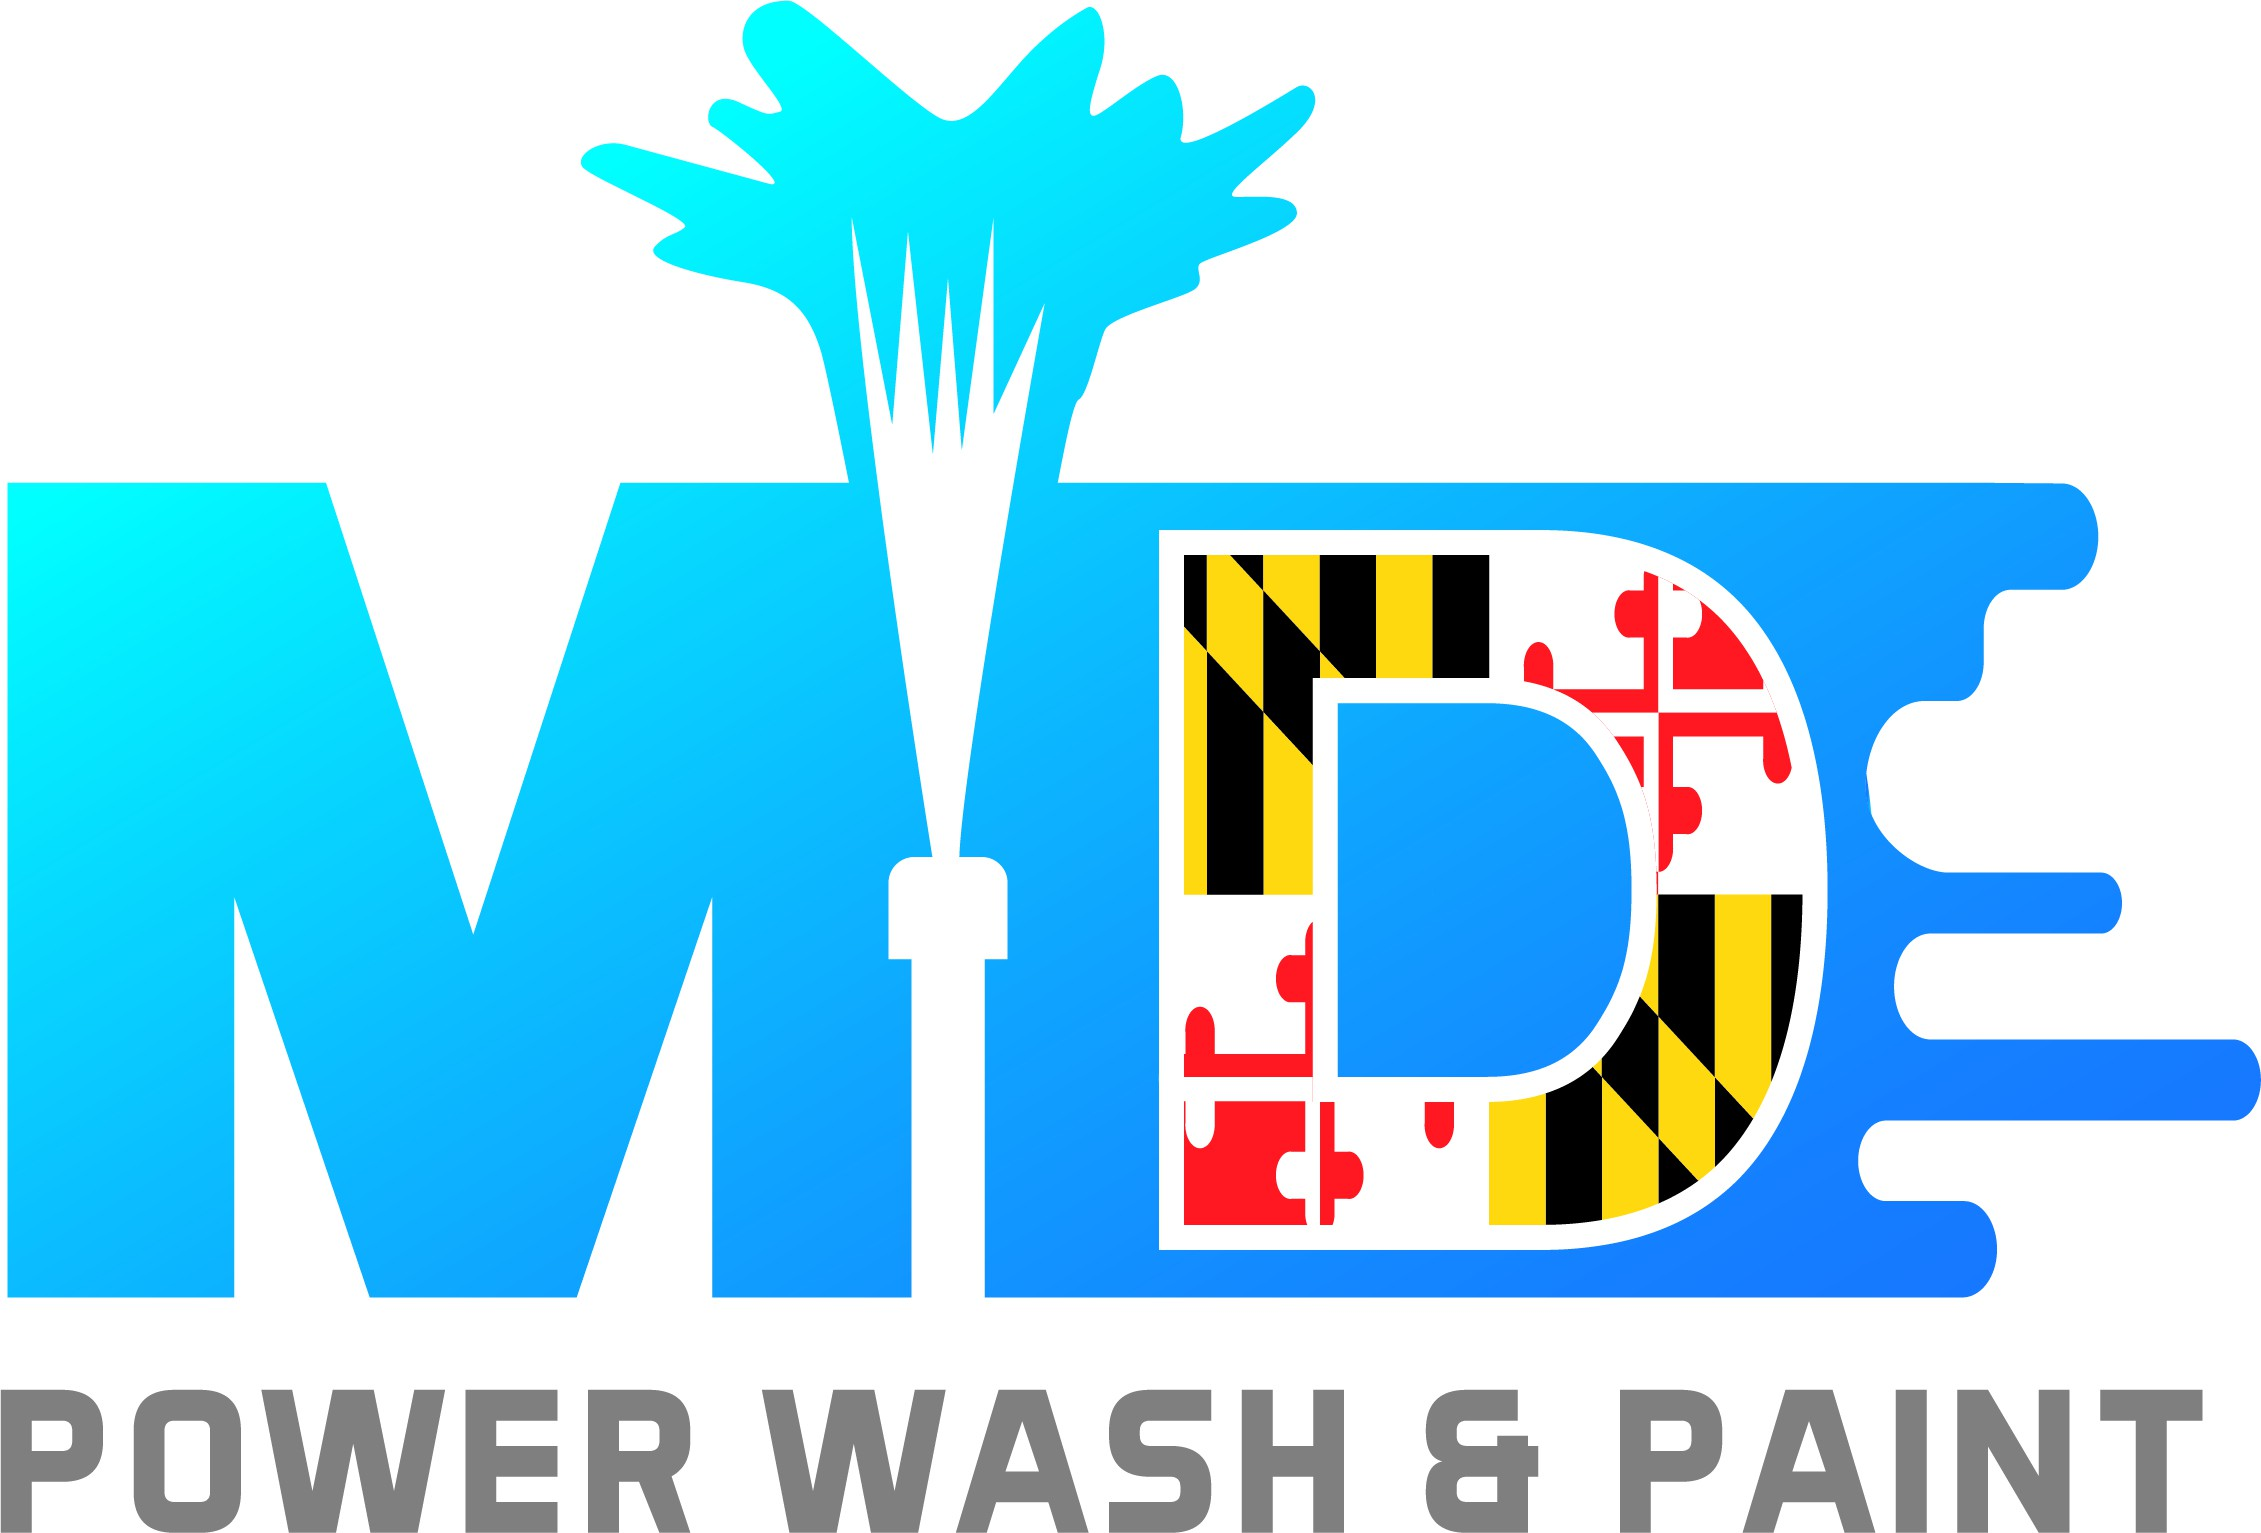 Design a winning logo for a power washing and painting company